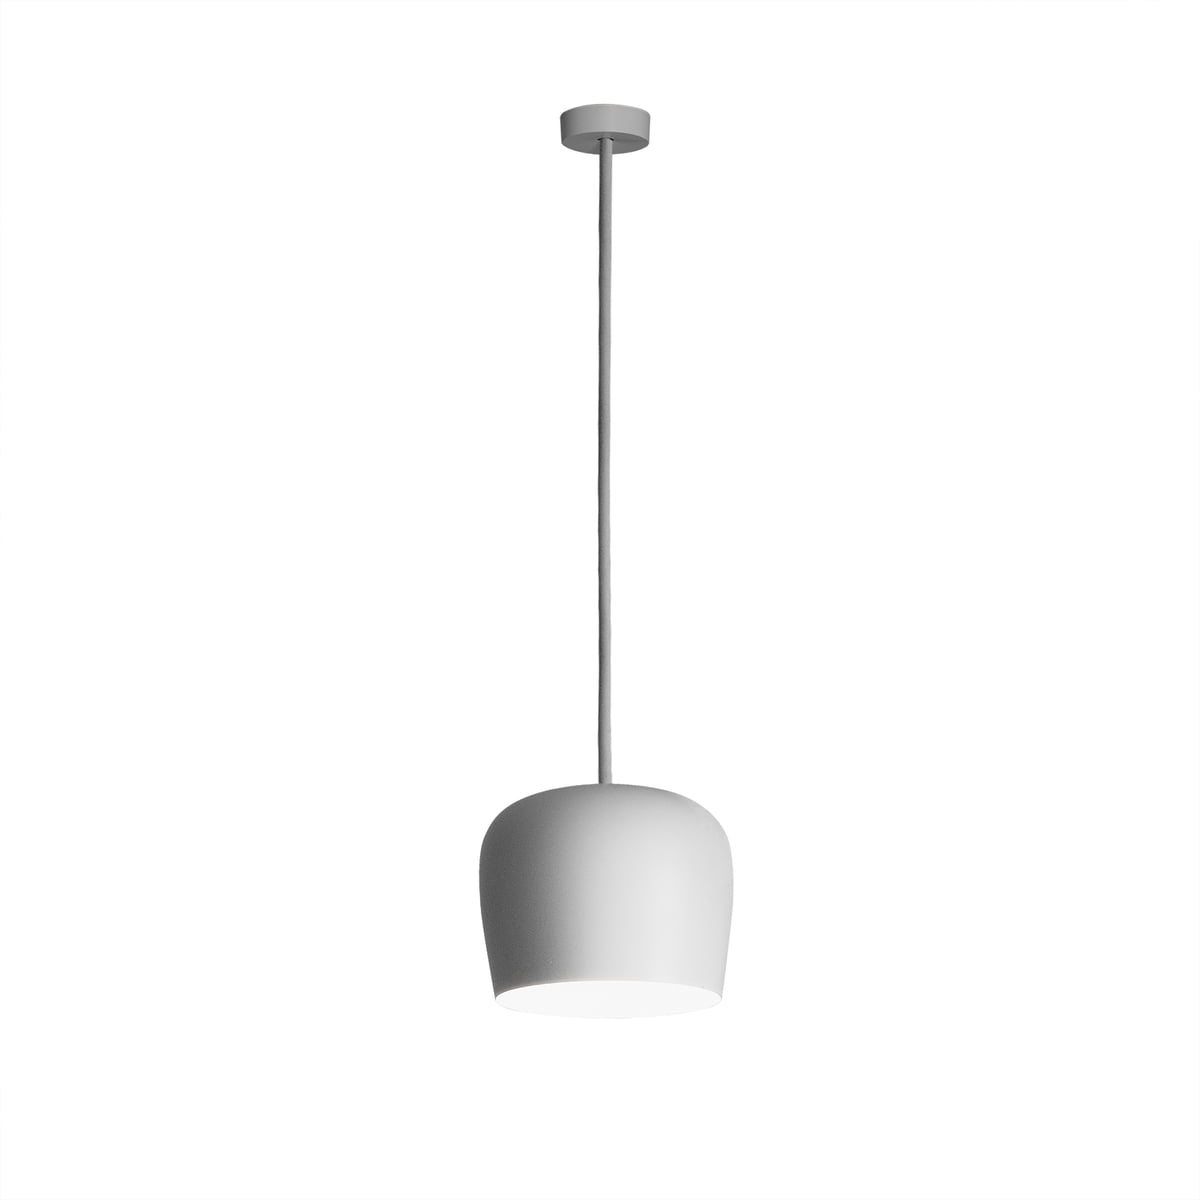 The aim small led pendant lamp fix by flos flos aim small led pedant lamp fix white aloadofball Gallery